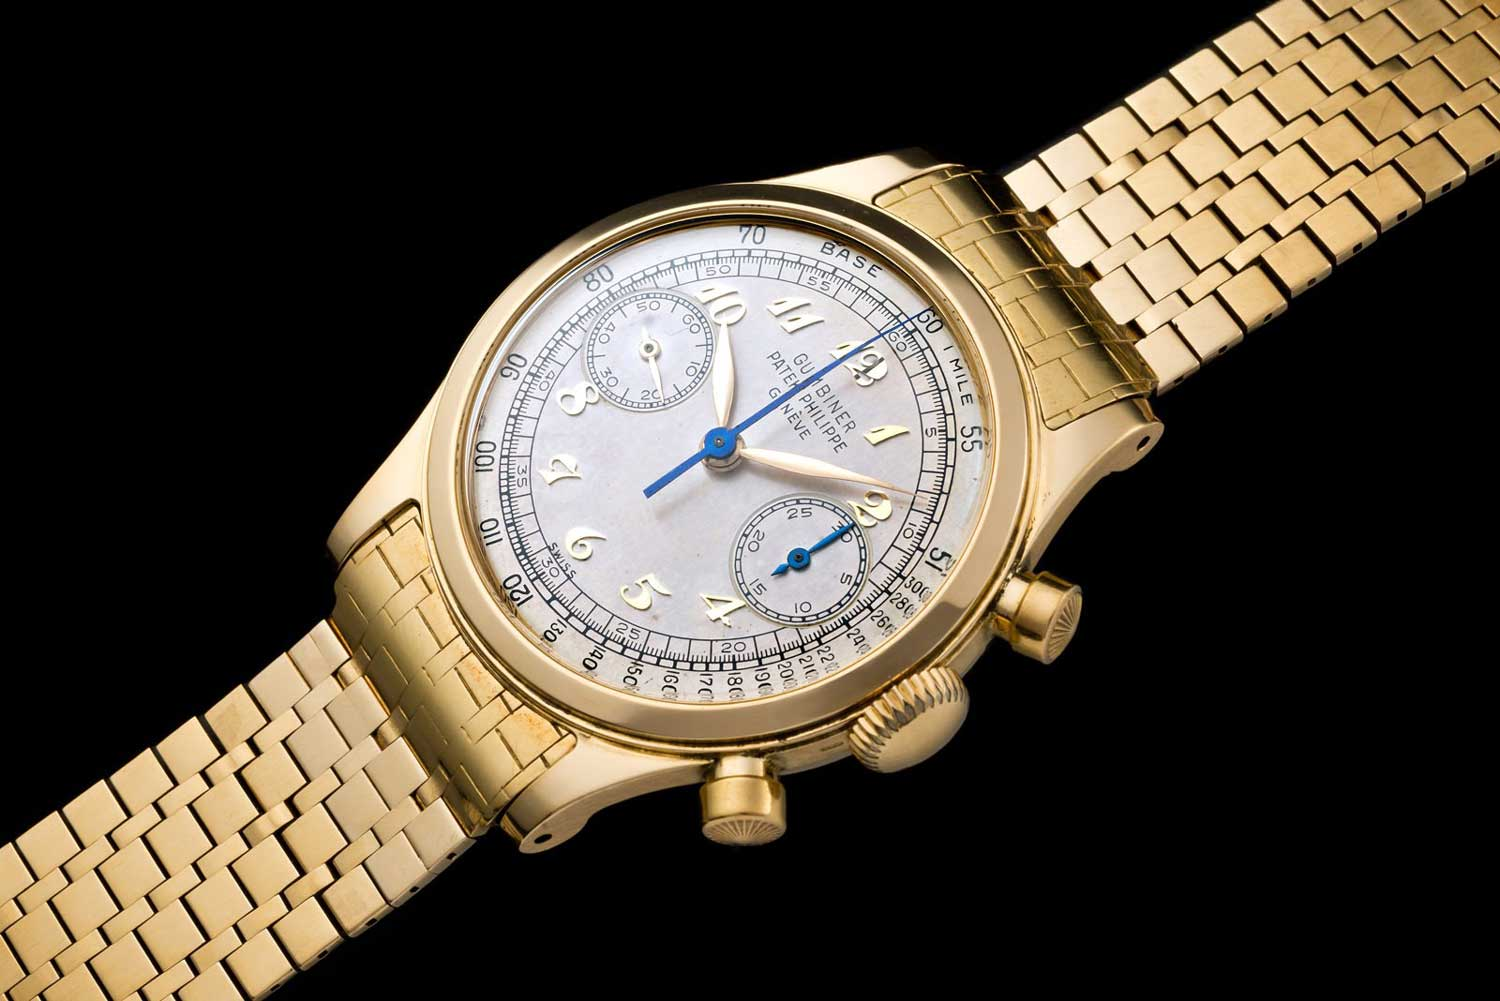 Patek Philippe Chronograph ref. 1463 with Breguet numerals in yellow gold (Image: Onlyvintage)